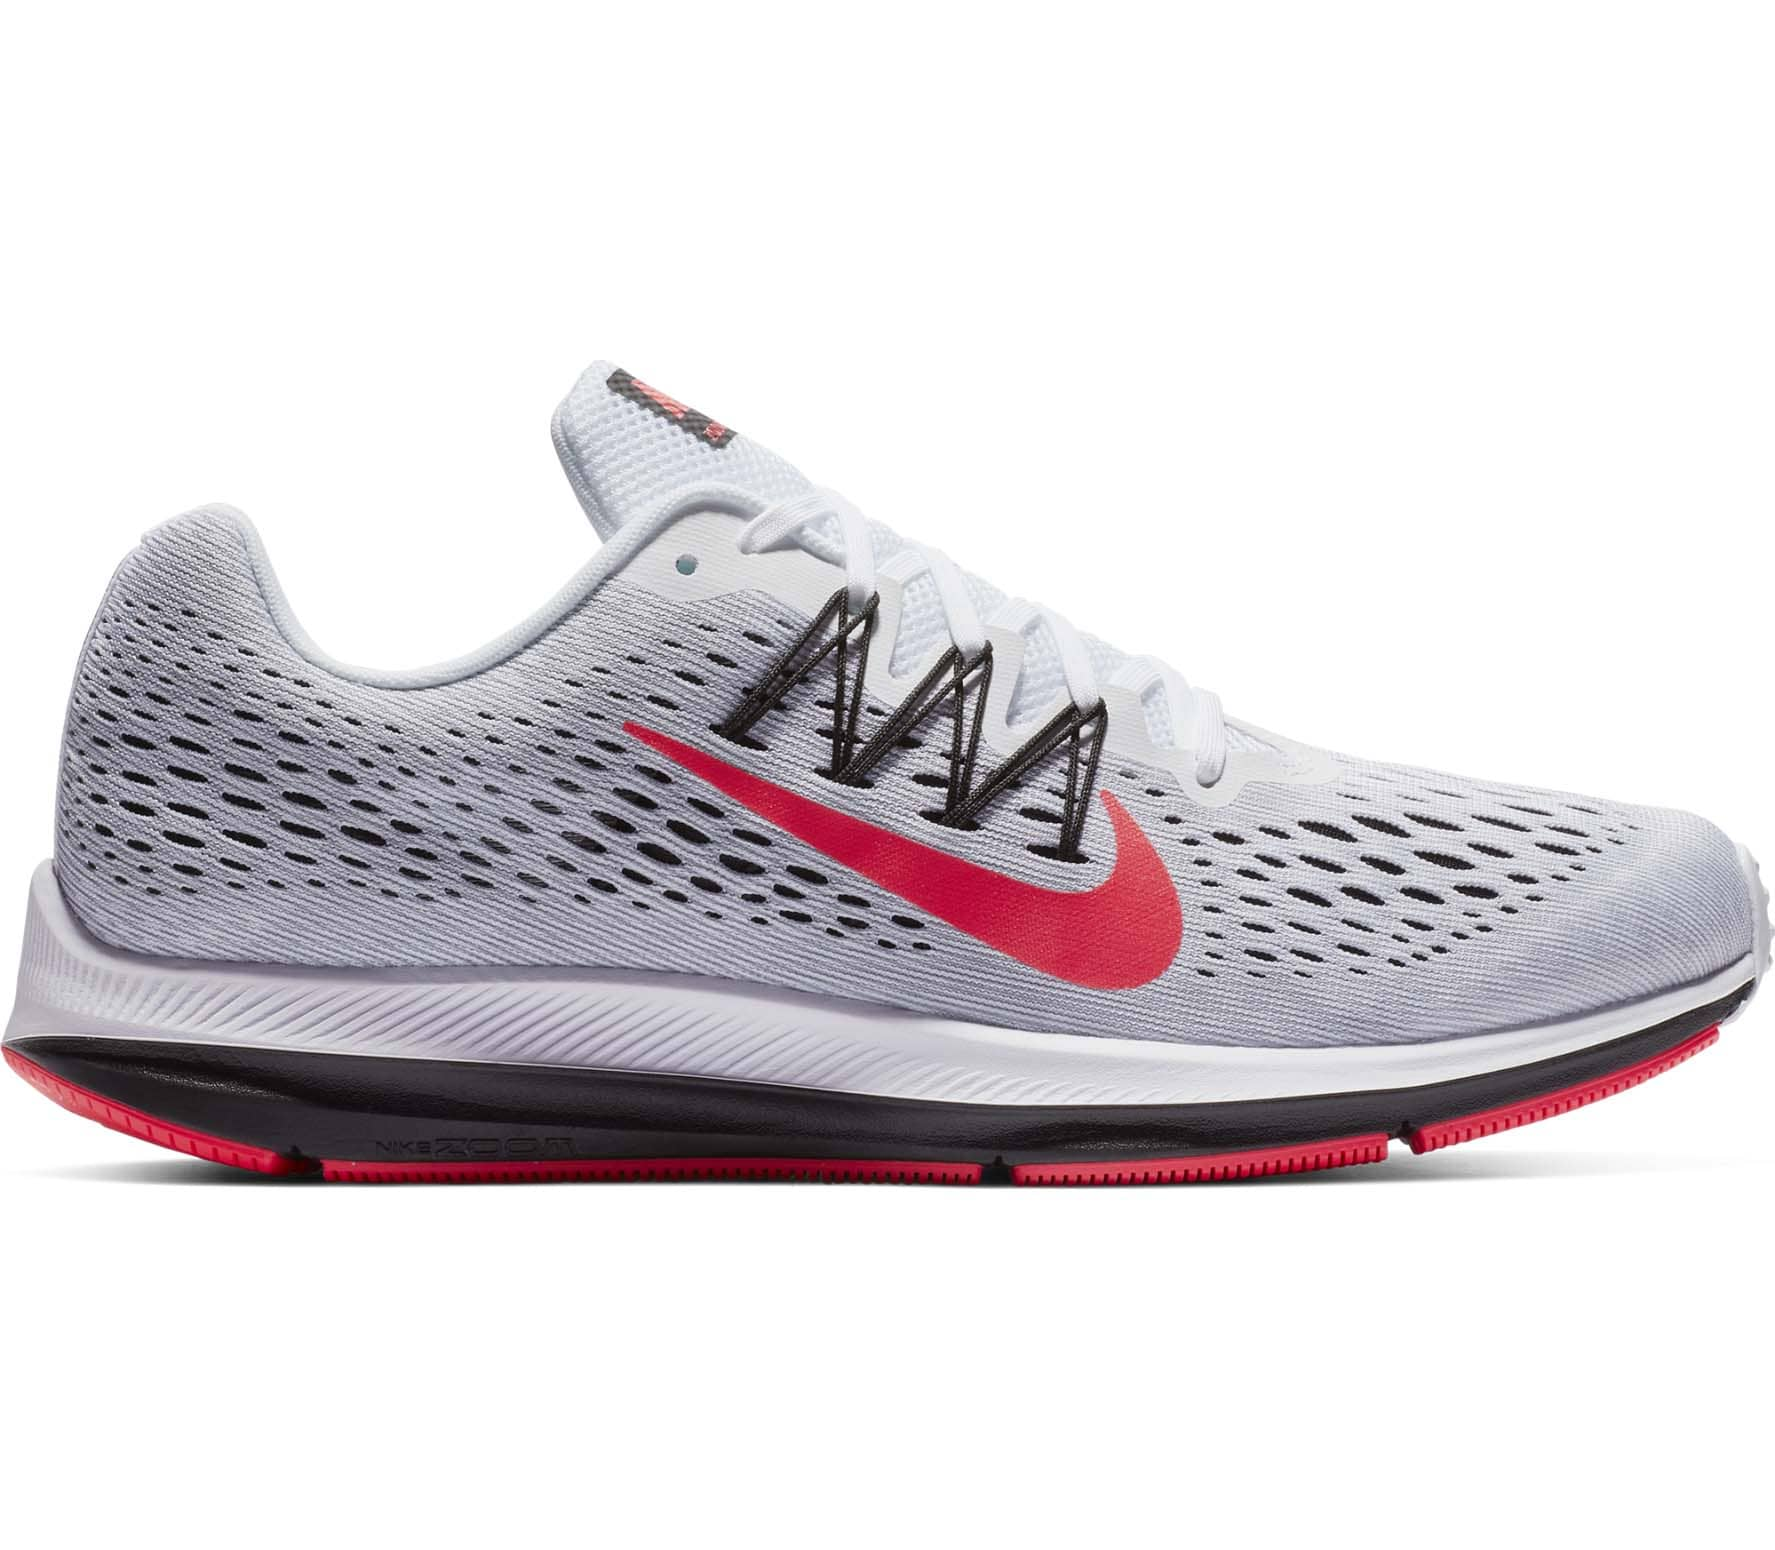 low priced b4086 878d8 Nike - Air Zoom Winflo 5 Hommes chaussure de course (blanc)